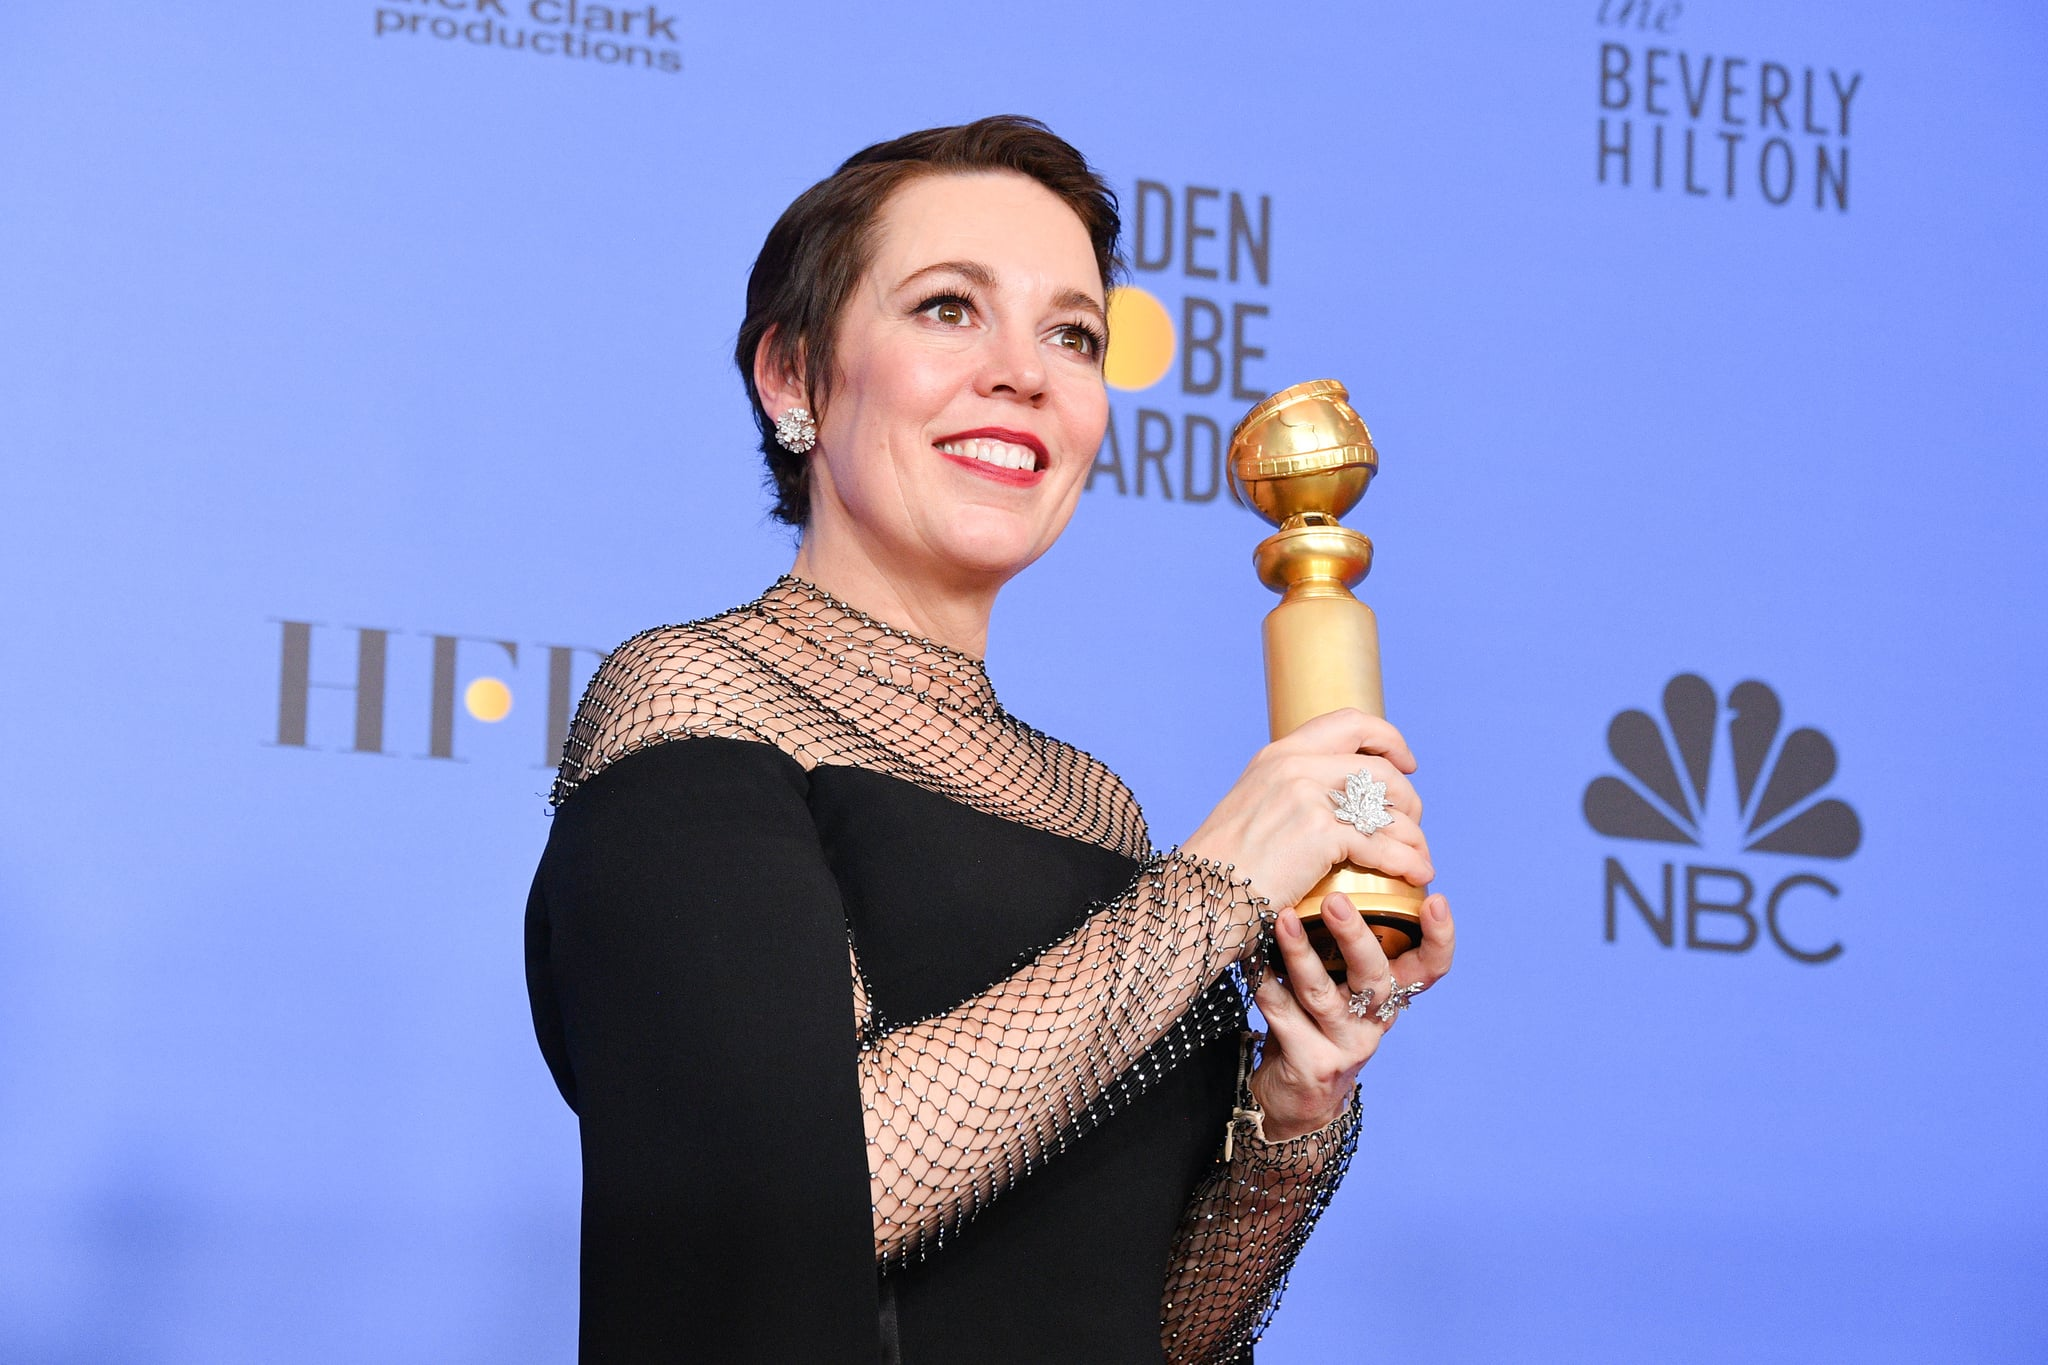 BEVERLY HILLS, CALIFORNIA - JANUARY 06: Best Actress in a Motion Picture Musical or Comedy for 'The Favourite' winner Olivia Colman poses in the press room during the 75th Annual Golden Globe Awards held at The Beverly Hilton Hotel on January 06, 2019 in Beverly Hills, California. (Photo by George Pimentel/WireImage,)